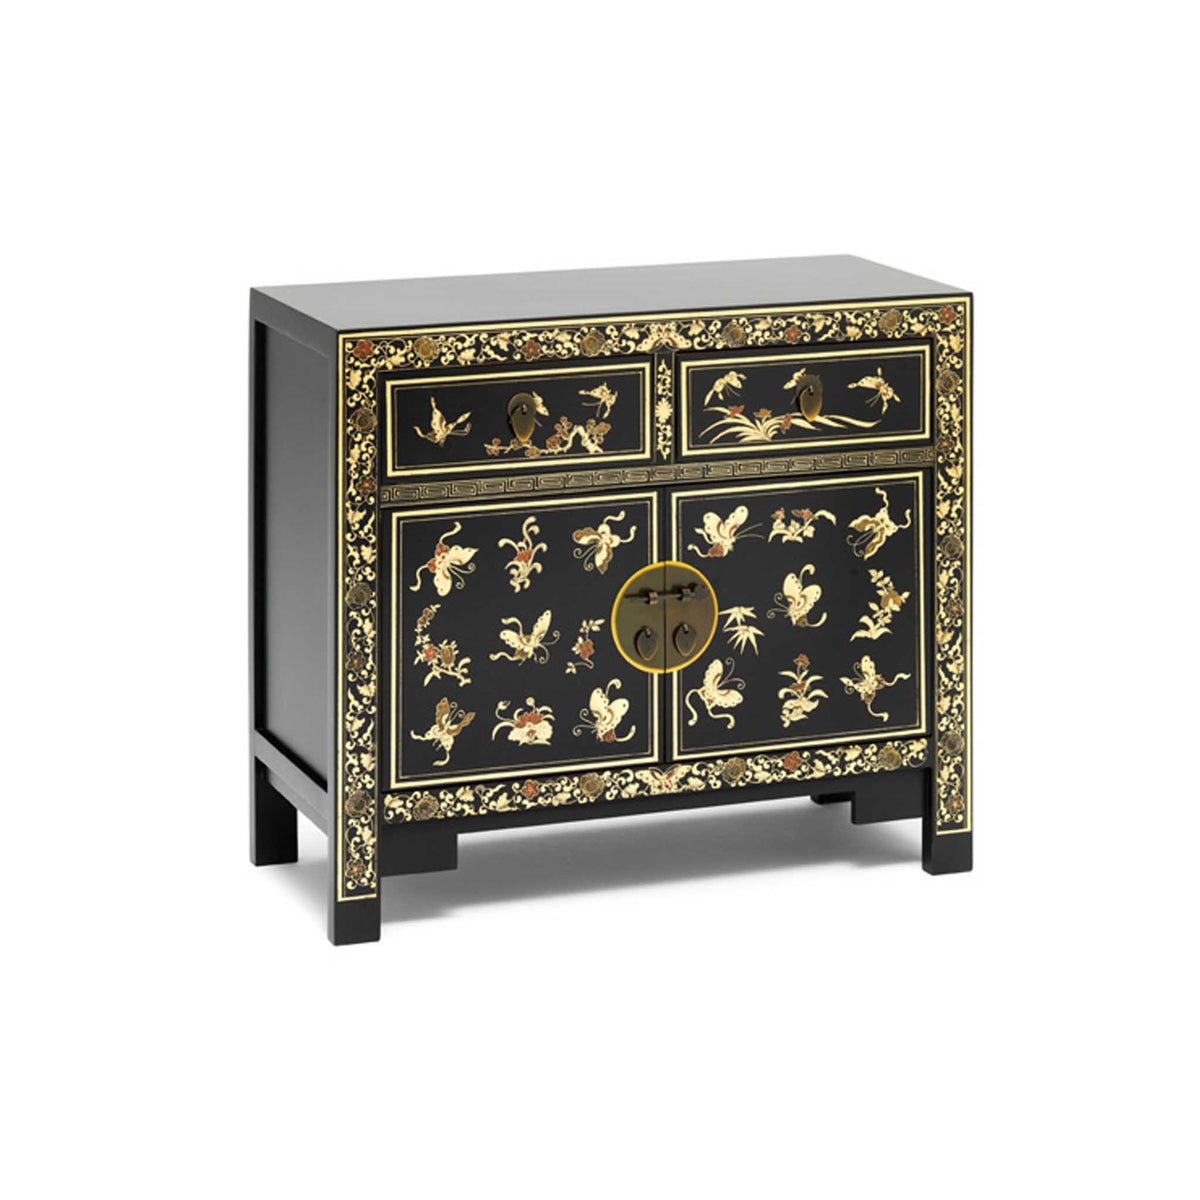 The Nine Schools Oriental Decorated Black Sideboard by Roseland Furniture